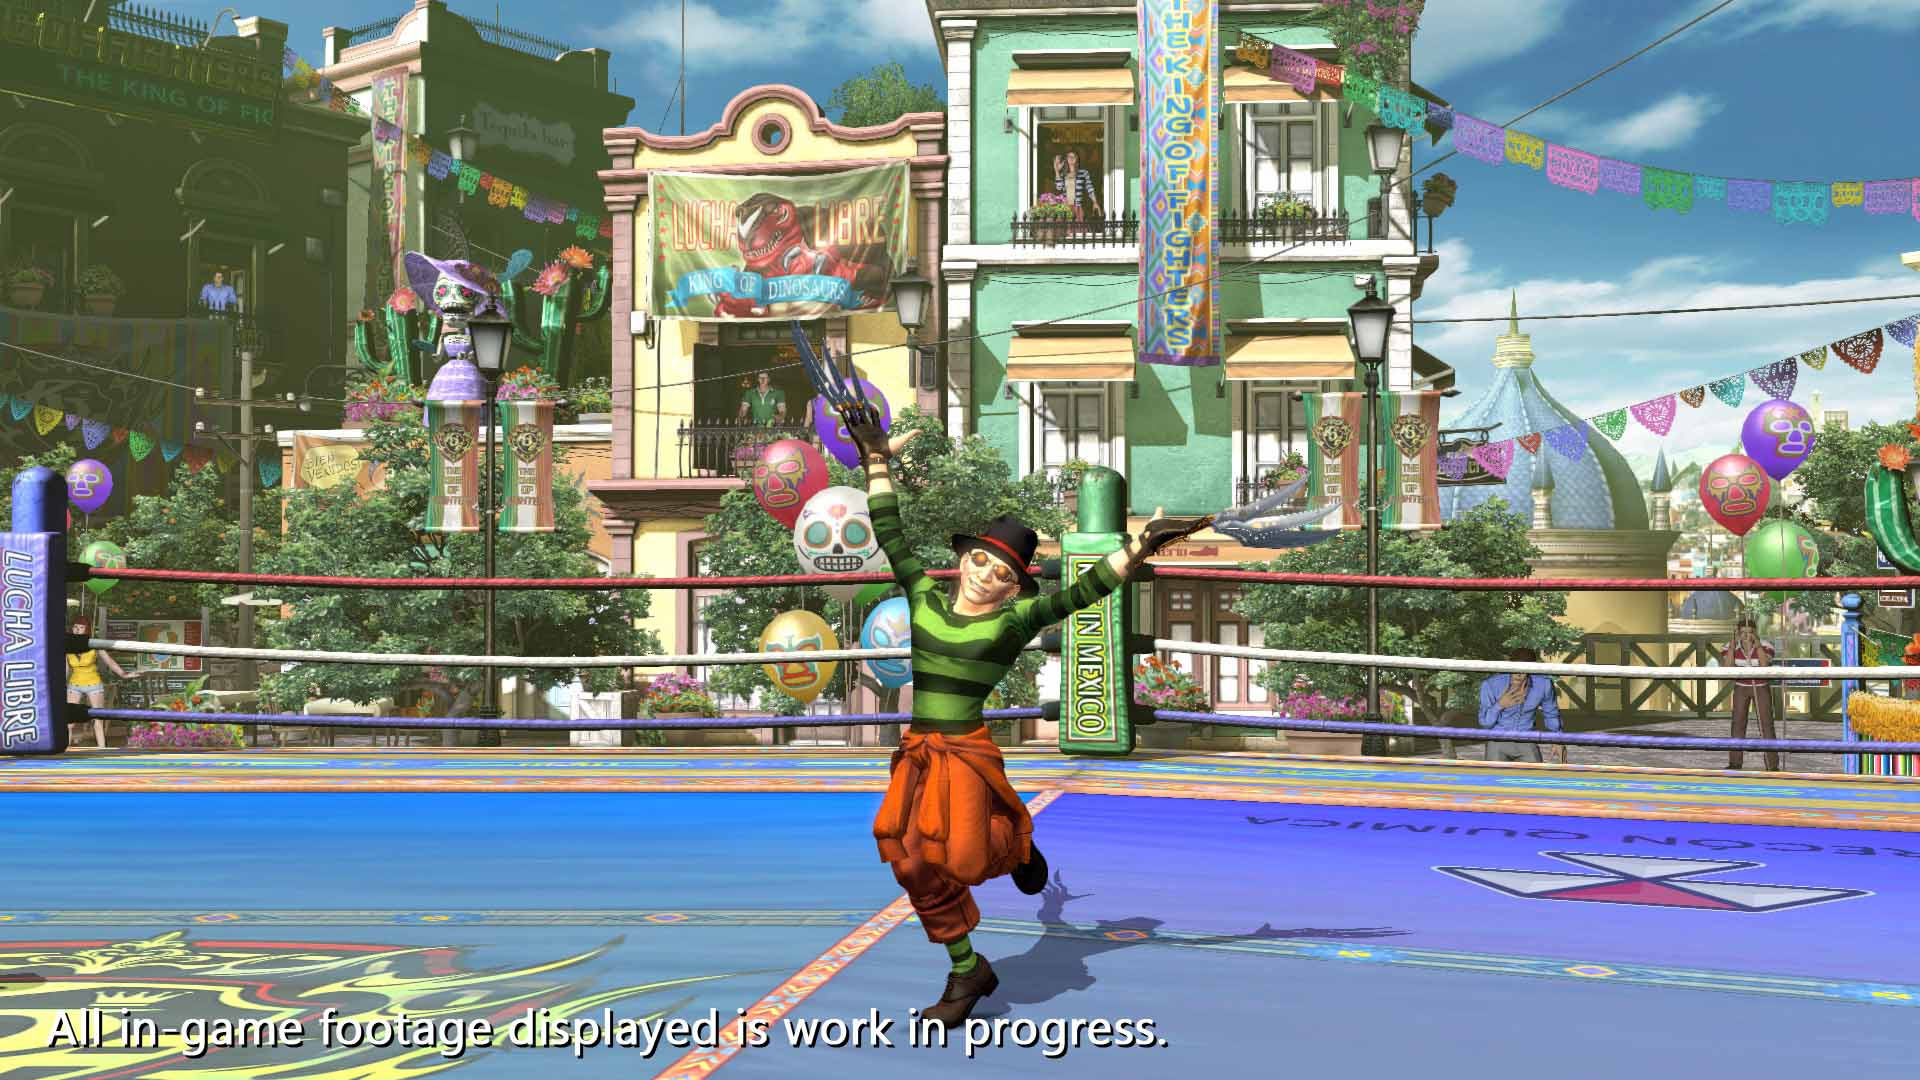 The King of Fighters XIV 3